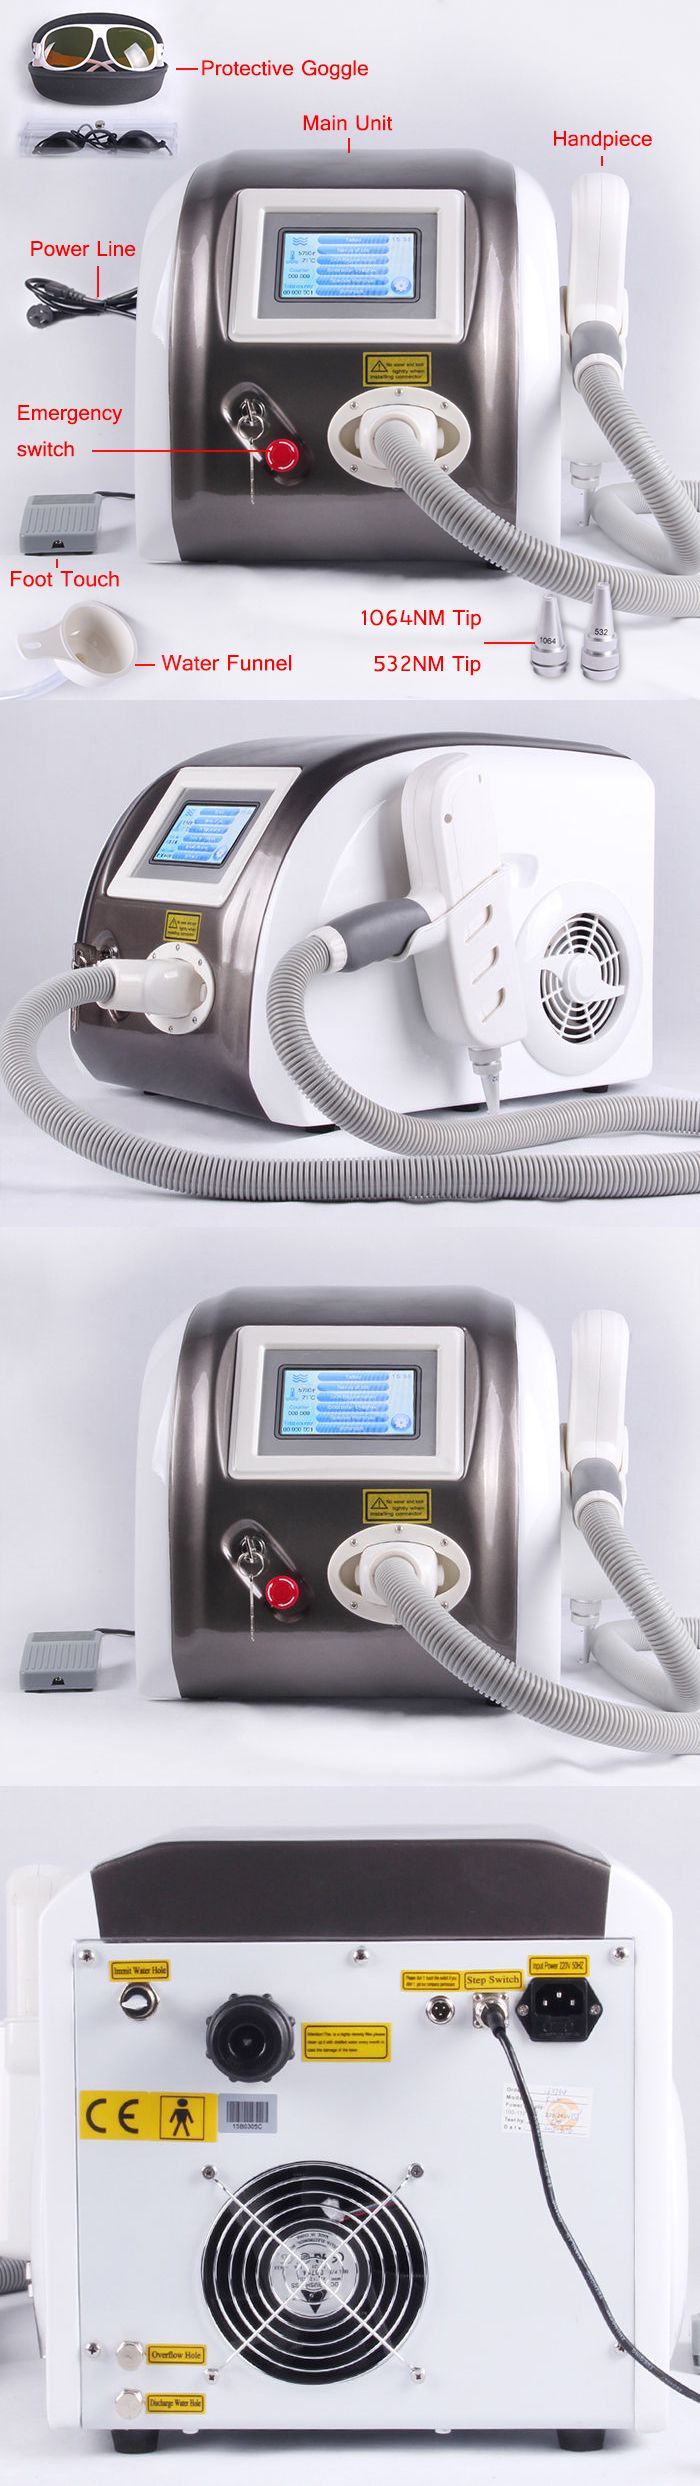 Tattoo Removal Machines: Portable Q-Switch Nd: Yag Laser Tattoo Removal Machine With 1064Nm And 532Nm -> BUY IT NOW ONLY: $1380.0 on eBay!